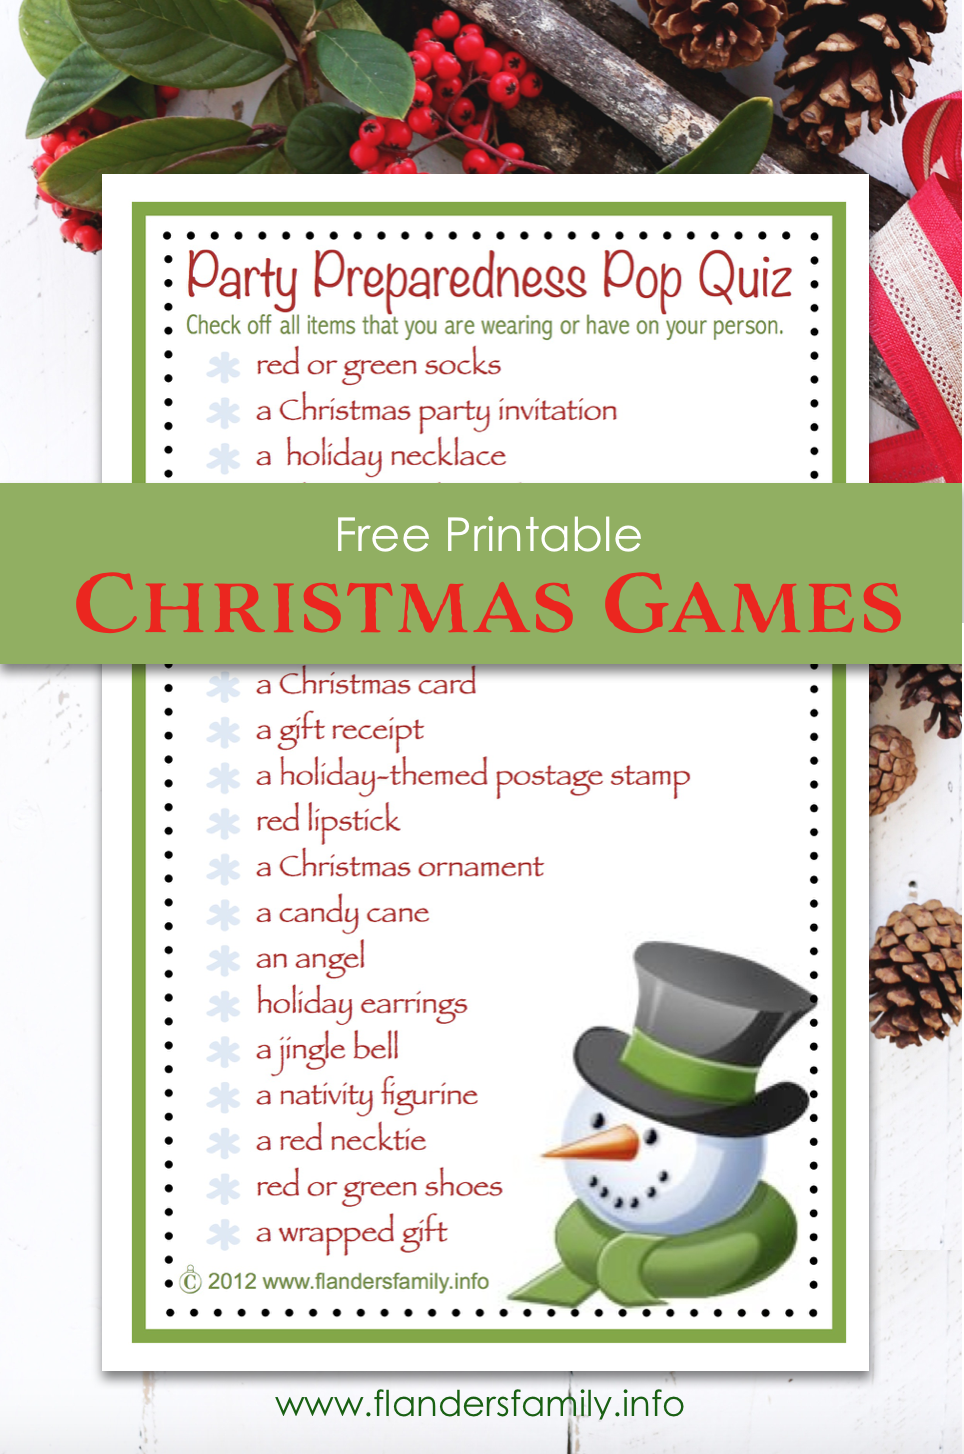 Party Preparedness Pop Quiz Christmas Game